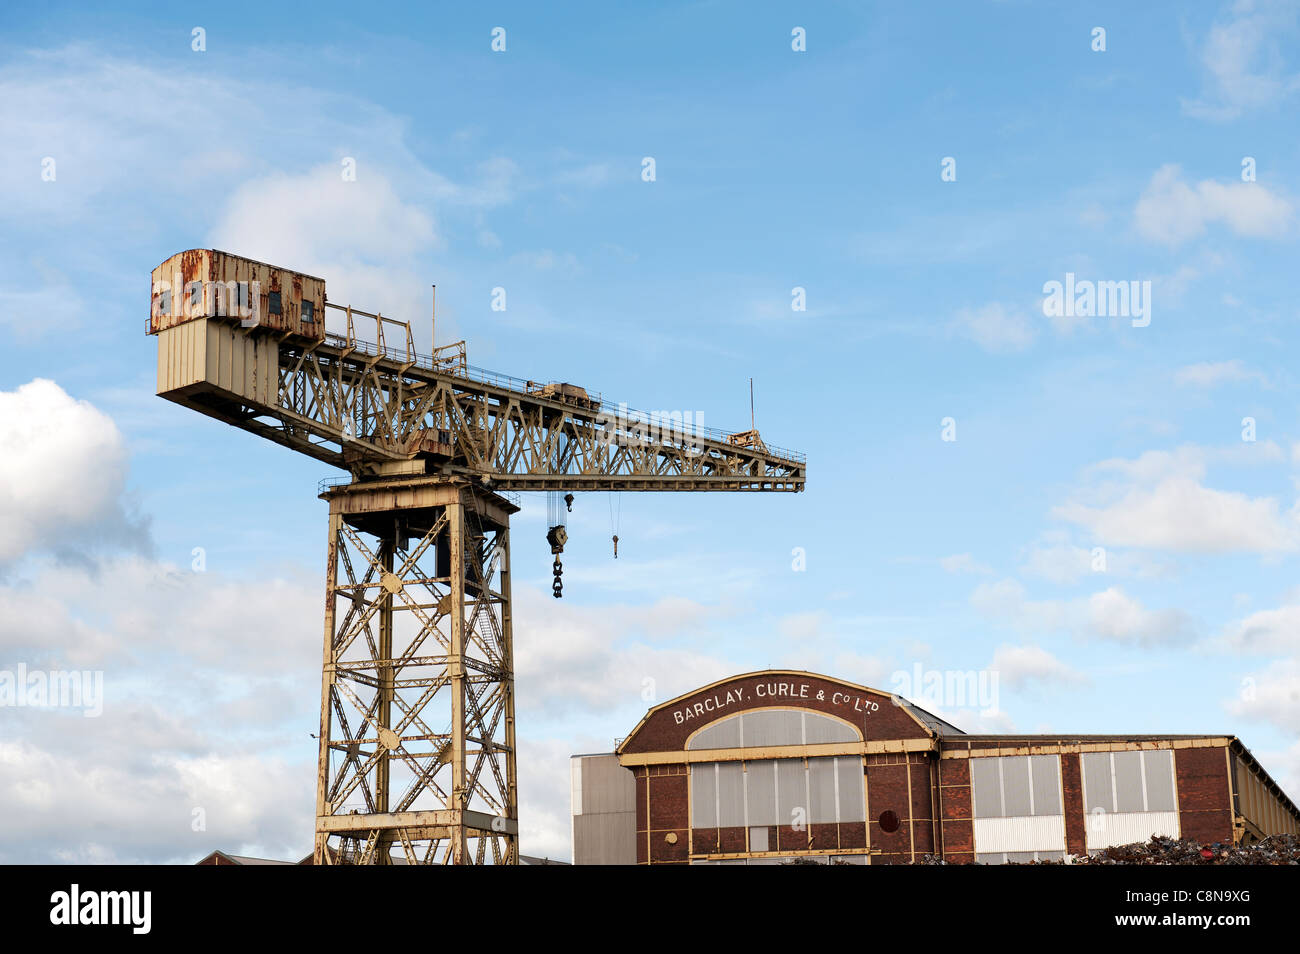 View of the Barclay Curle Engine Works Titan Crane on the banks of the River Clyde, Glasgow, Scotland. - Stock Image